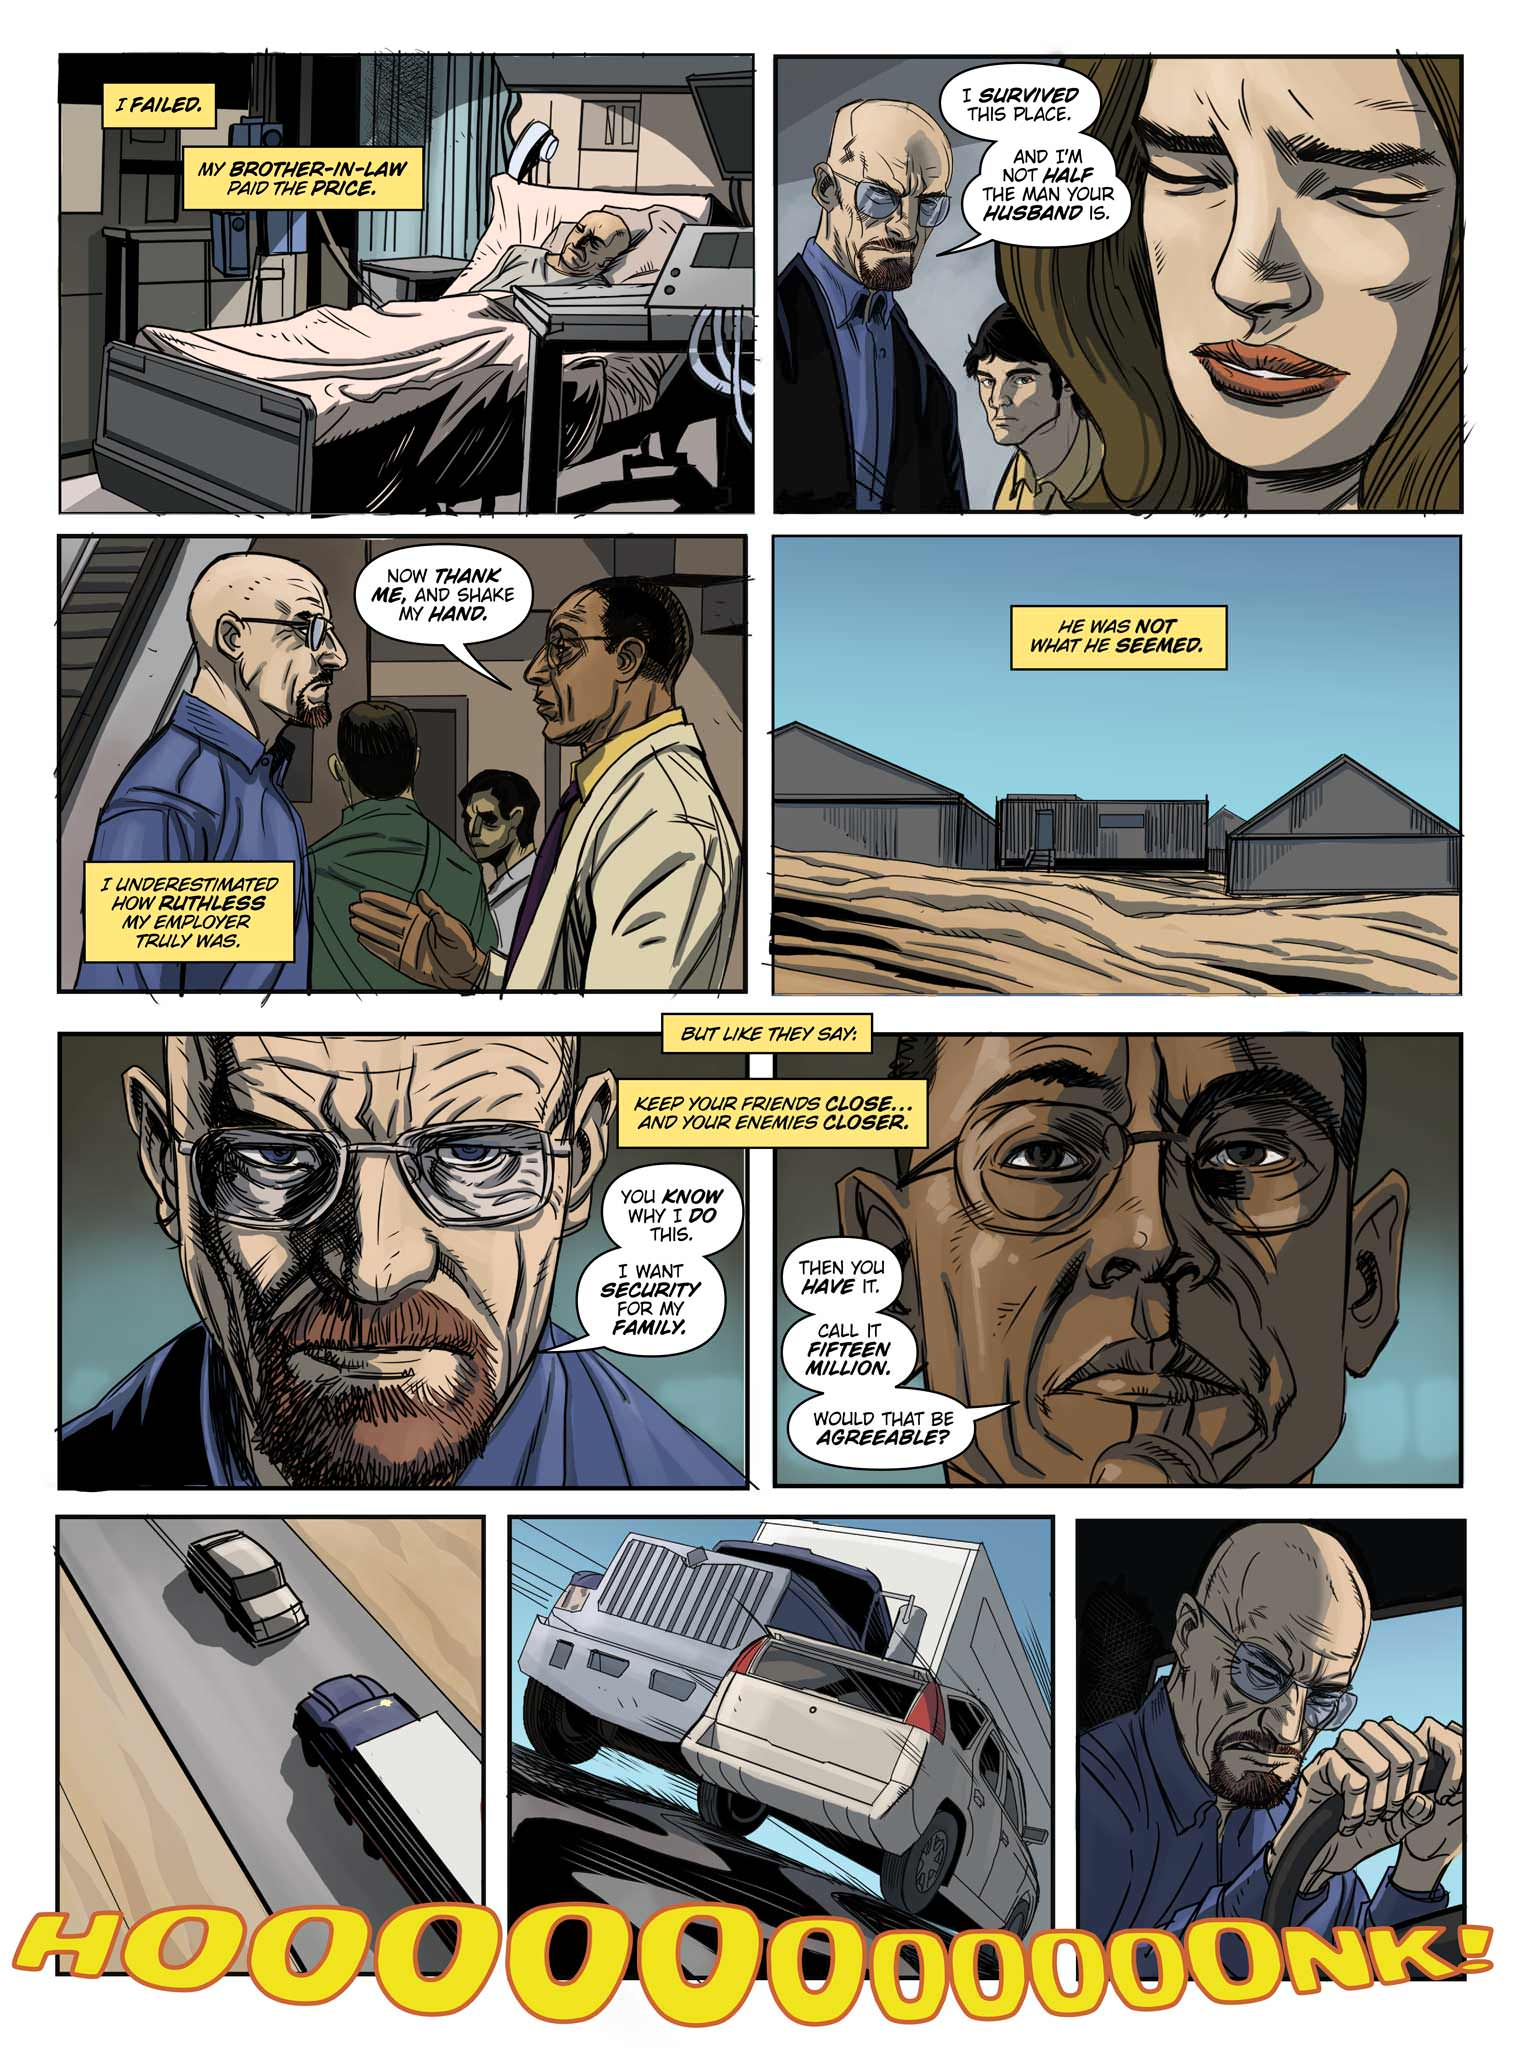 Read online Breaking Bad: All Bad Things comic -  Issue # Full - 11